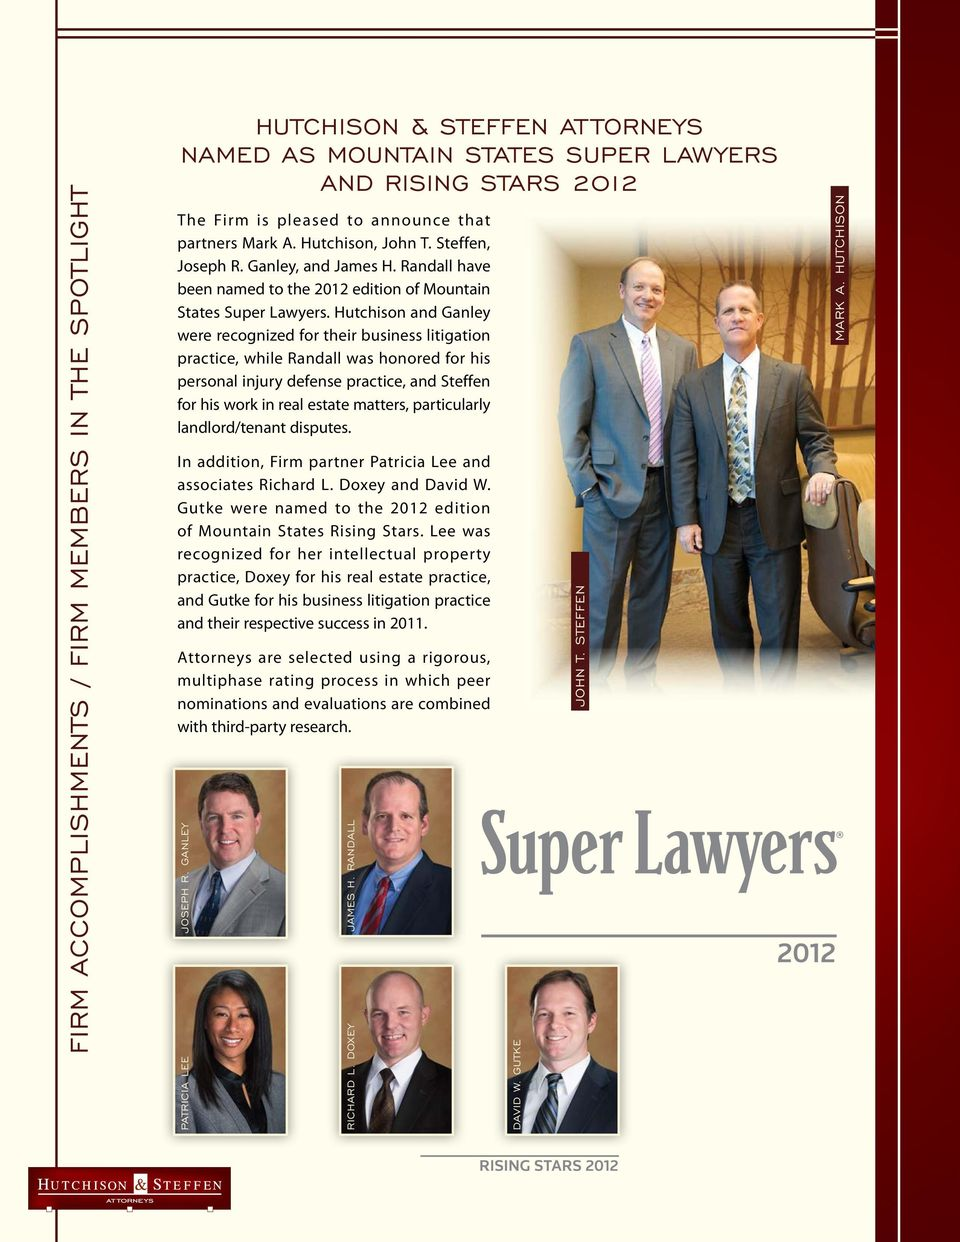 Hutchison and Ganley were recognized for their business litigation practice, while Randall was honored for his personal injury defense practice, and Steffen for his work in real estate matters,